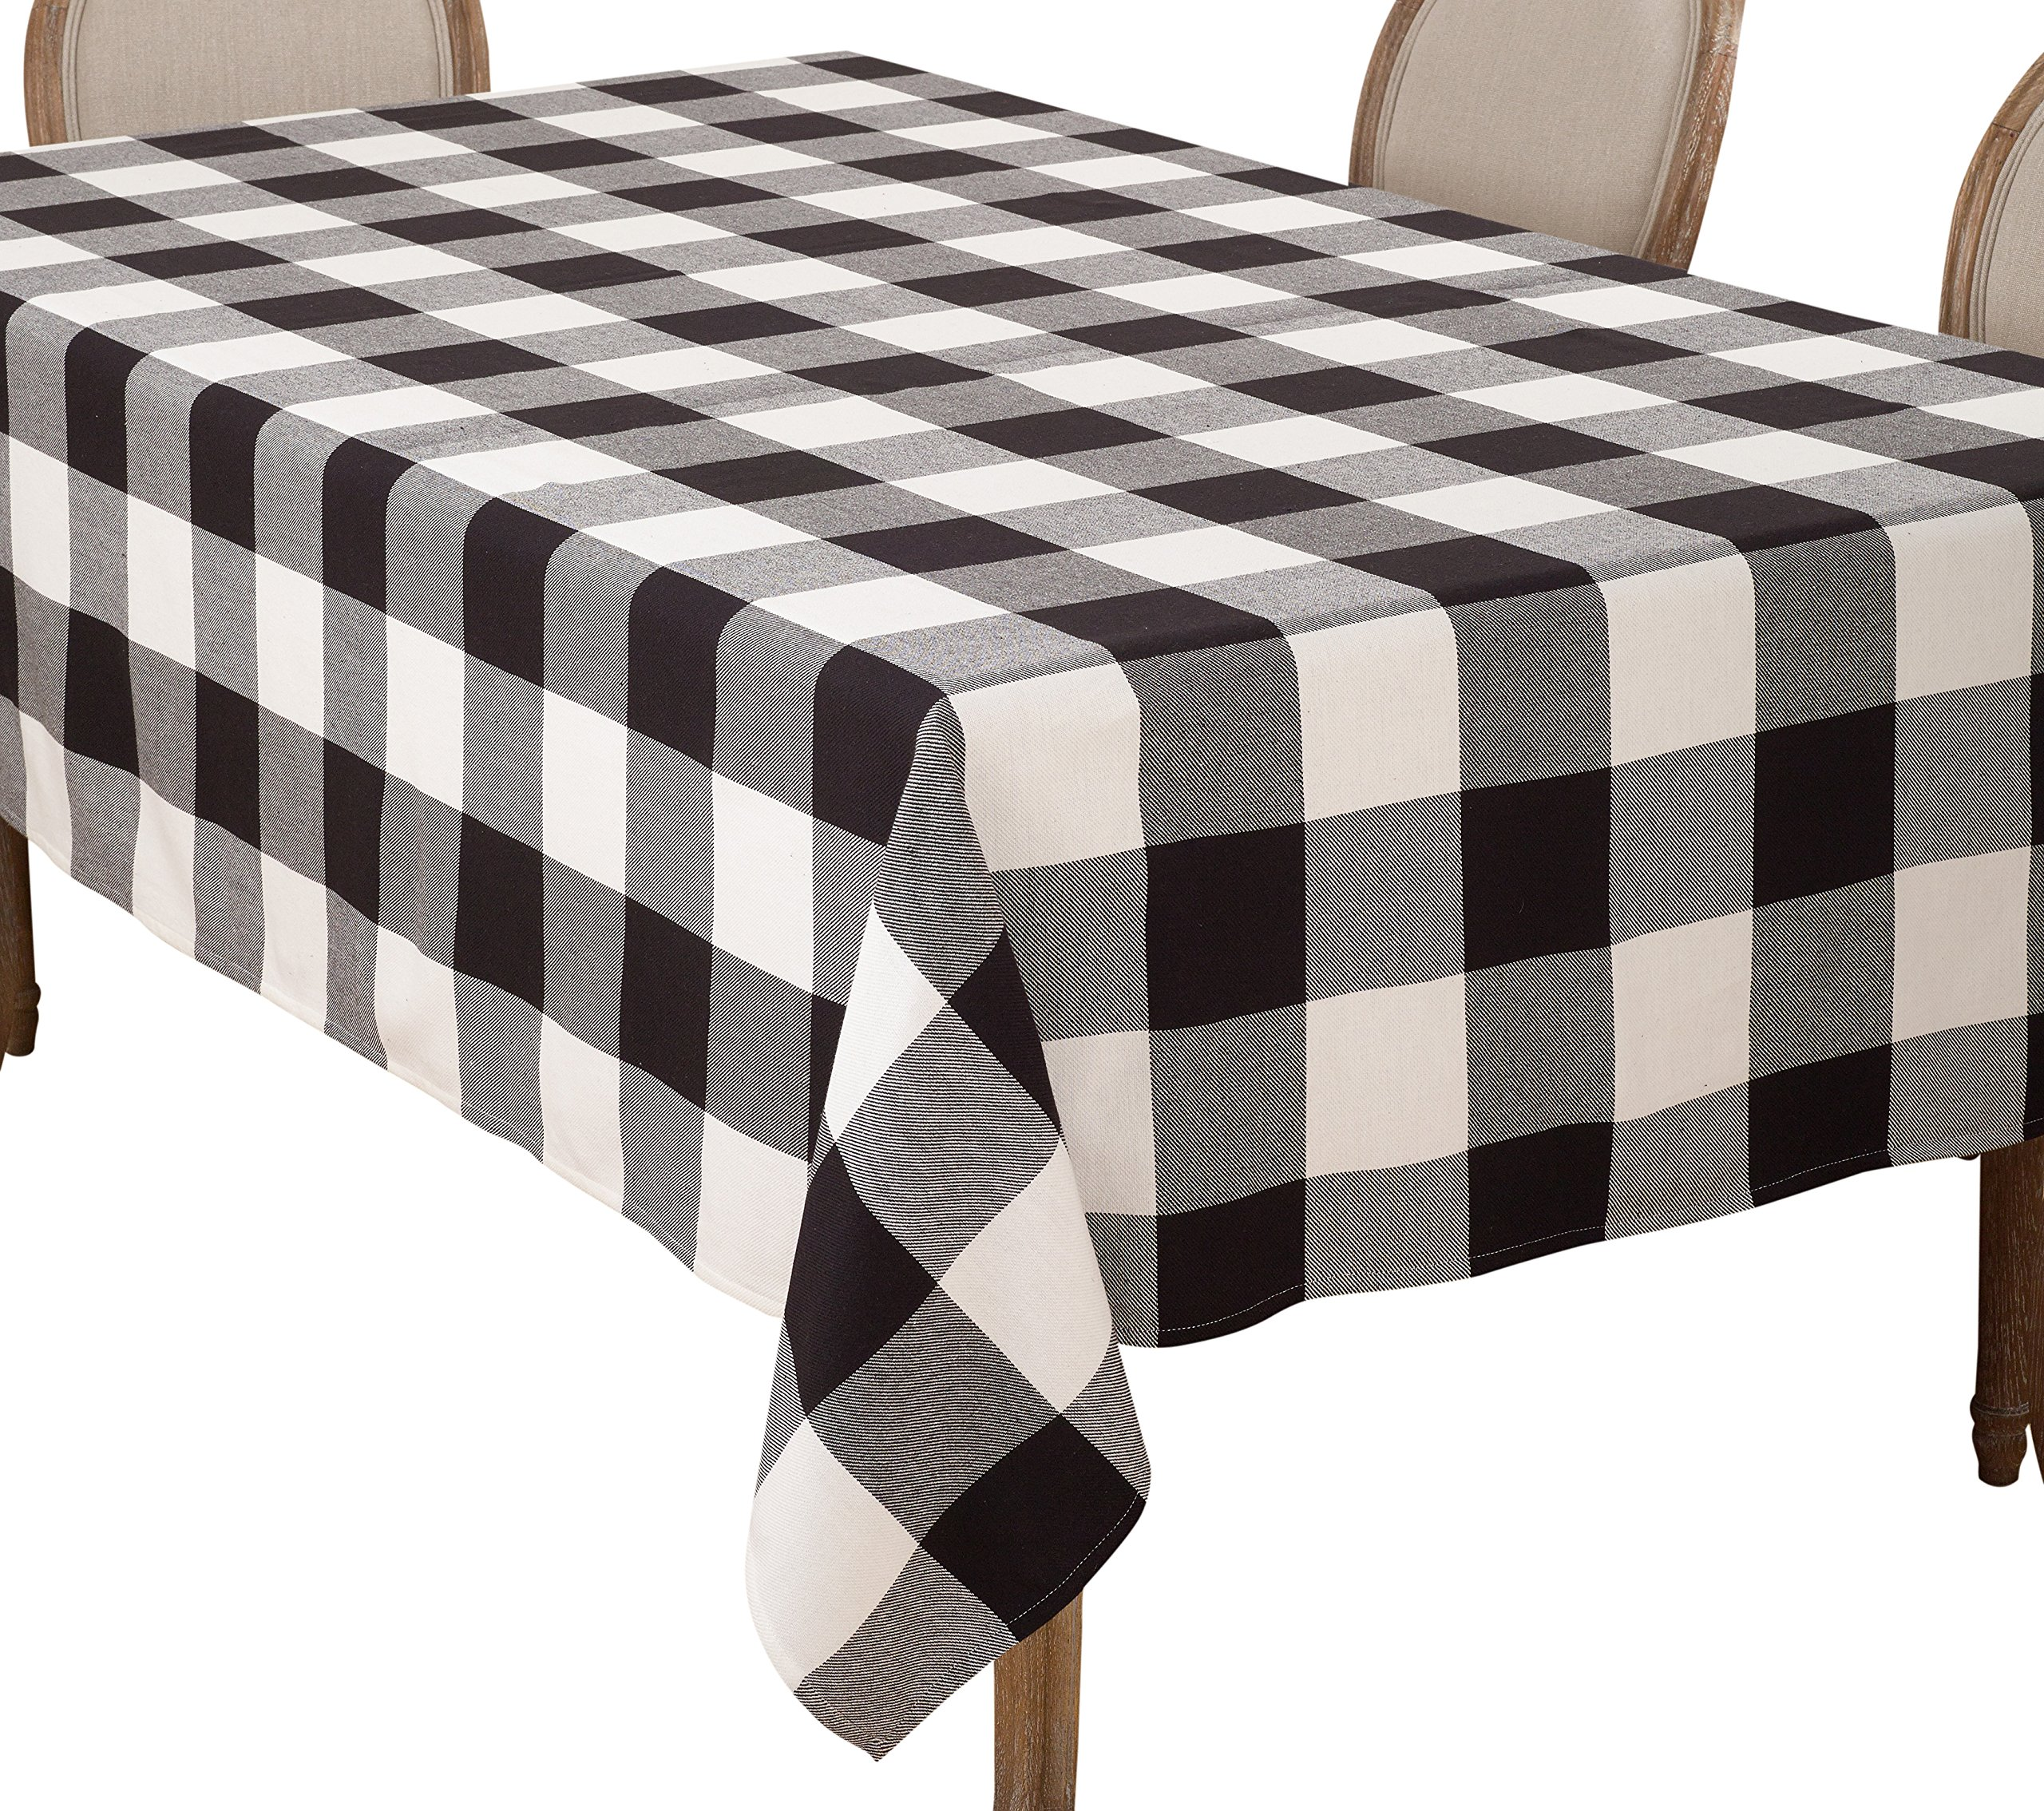 SARO LIFESTYLE Buffalo Plaid Check Design Cotton Tablecloth, 65'' x 160'', Black